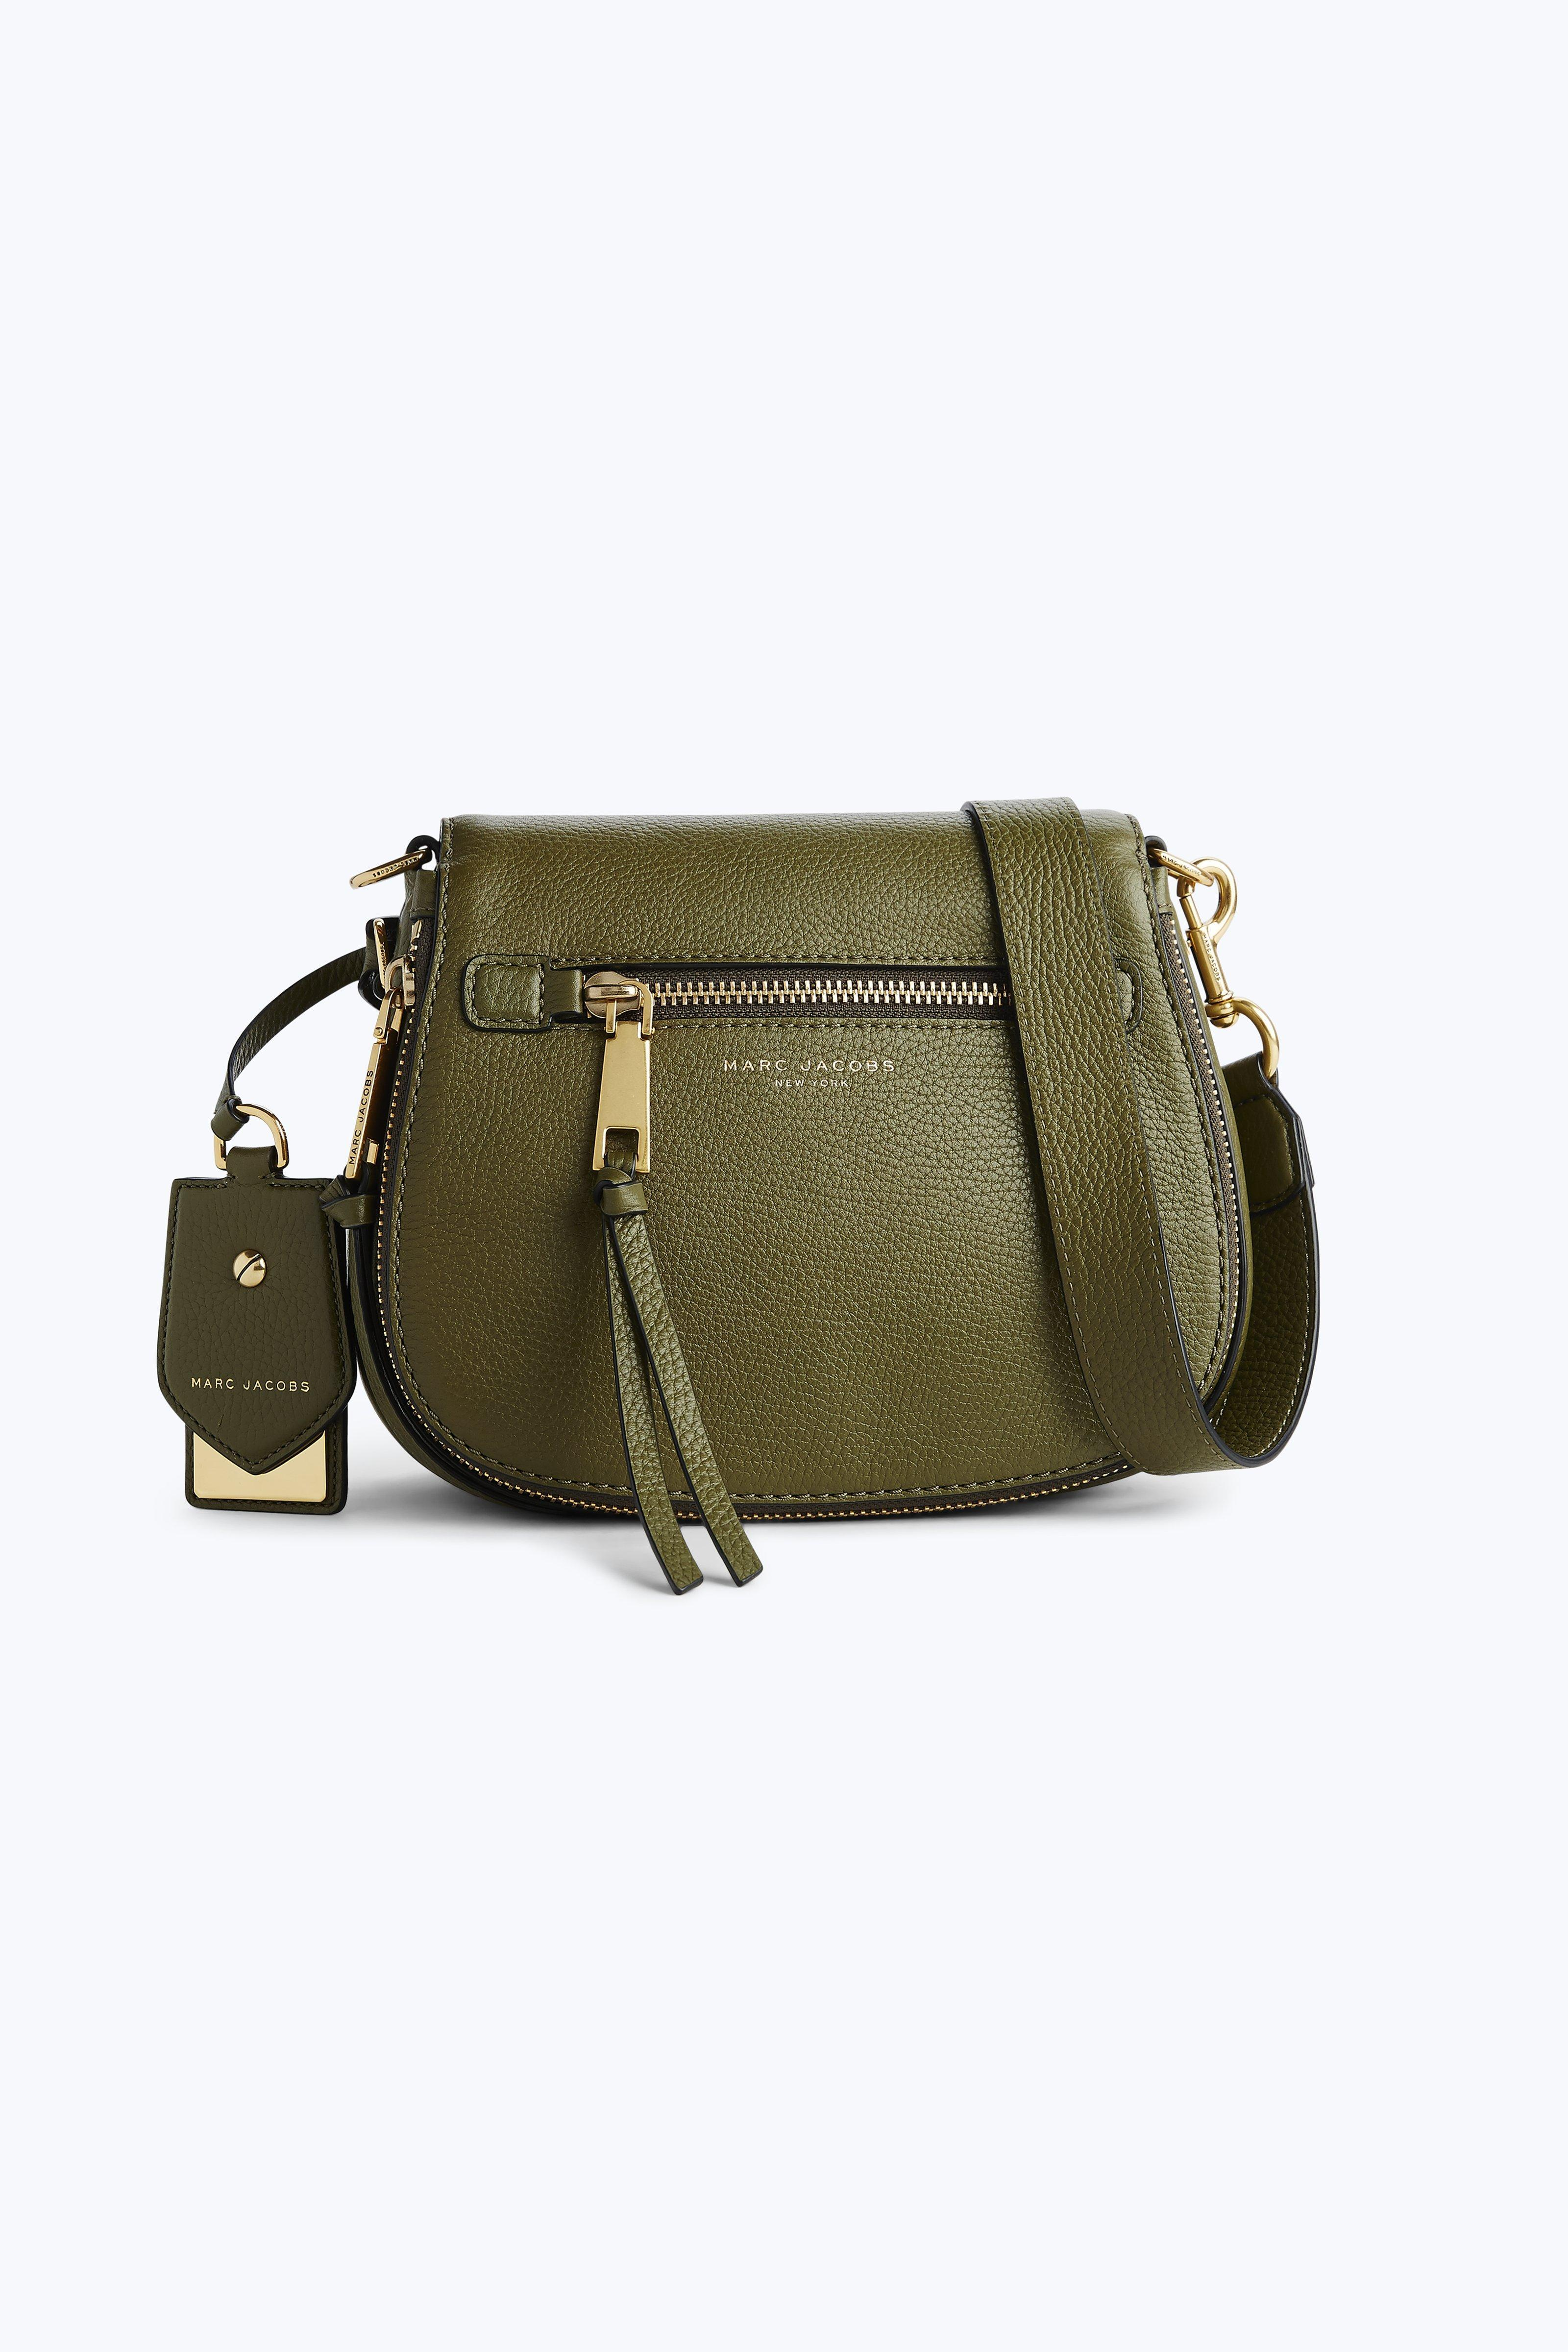 a64e29e61f Marc Jacobs Recruit Nomad Leather Saddle Bag In Army Green   ModeSens